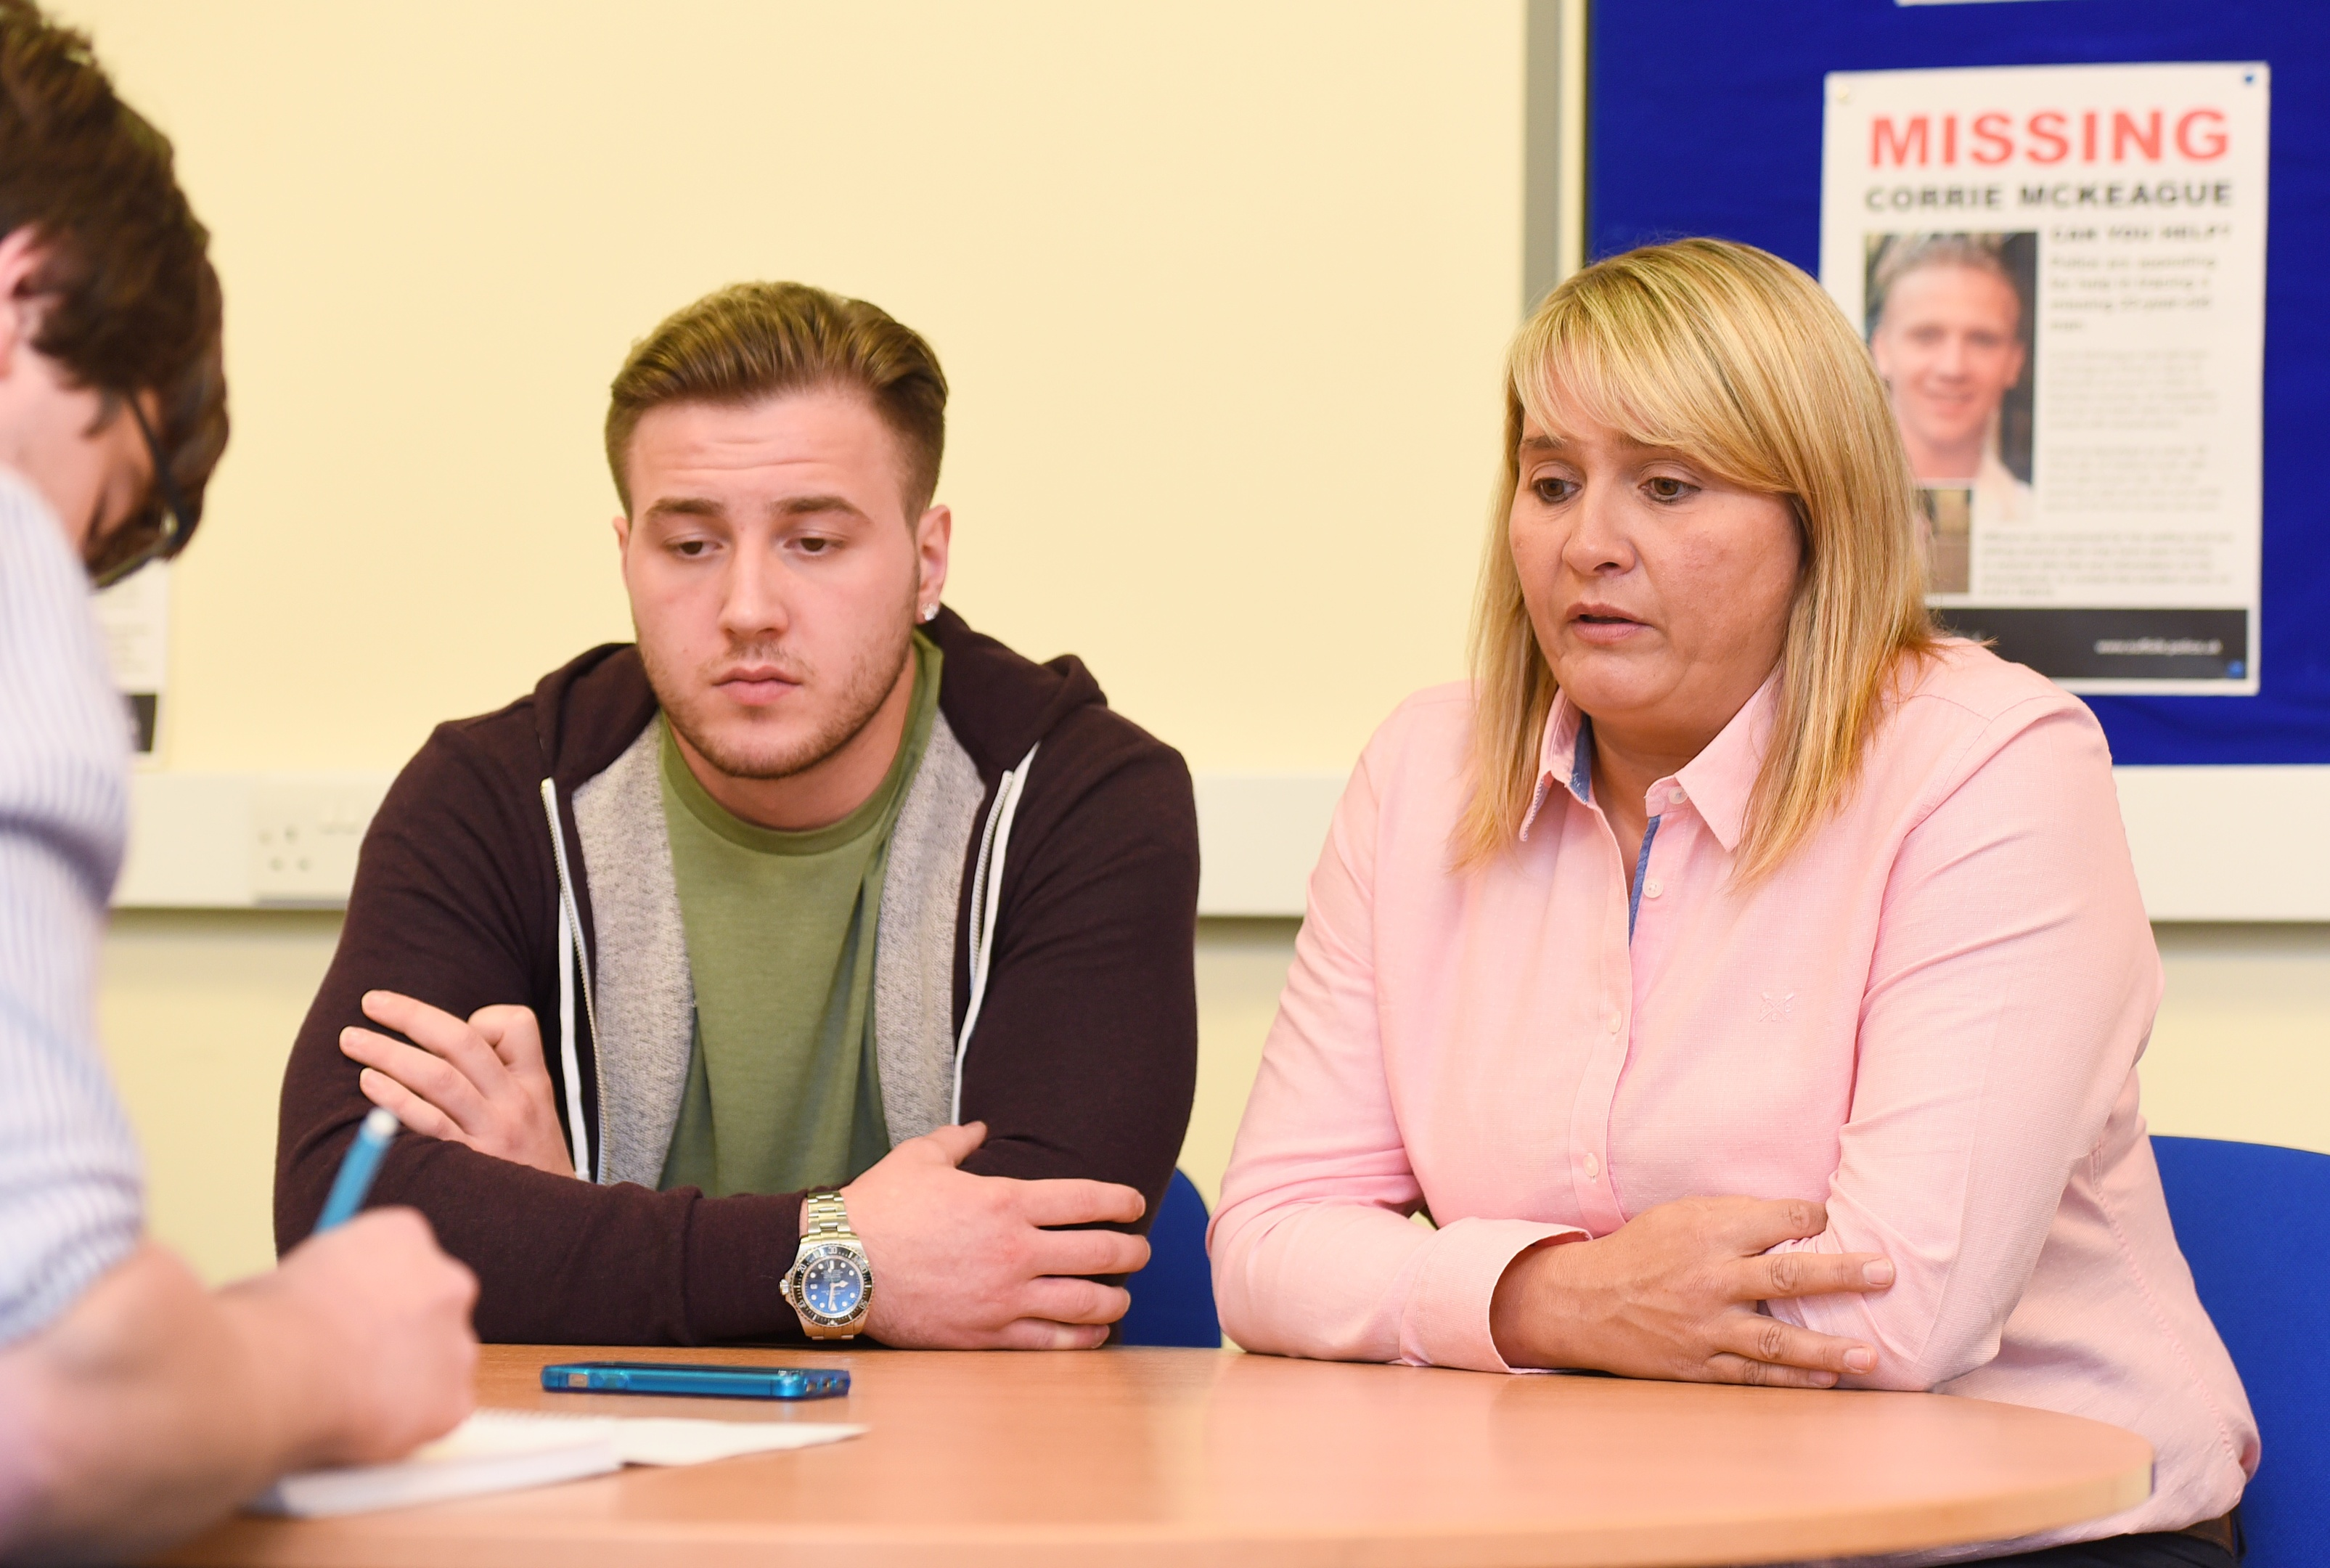 Corrie's brother Darroch McKeague and mother Nicola Urquhart pictured at the start of the investigation.